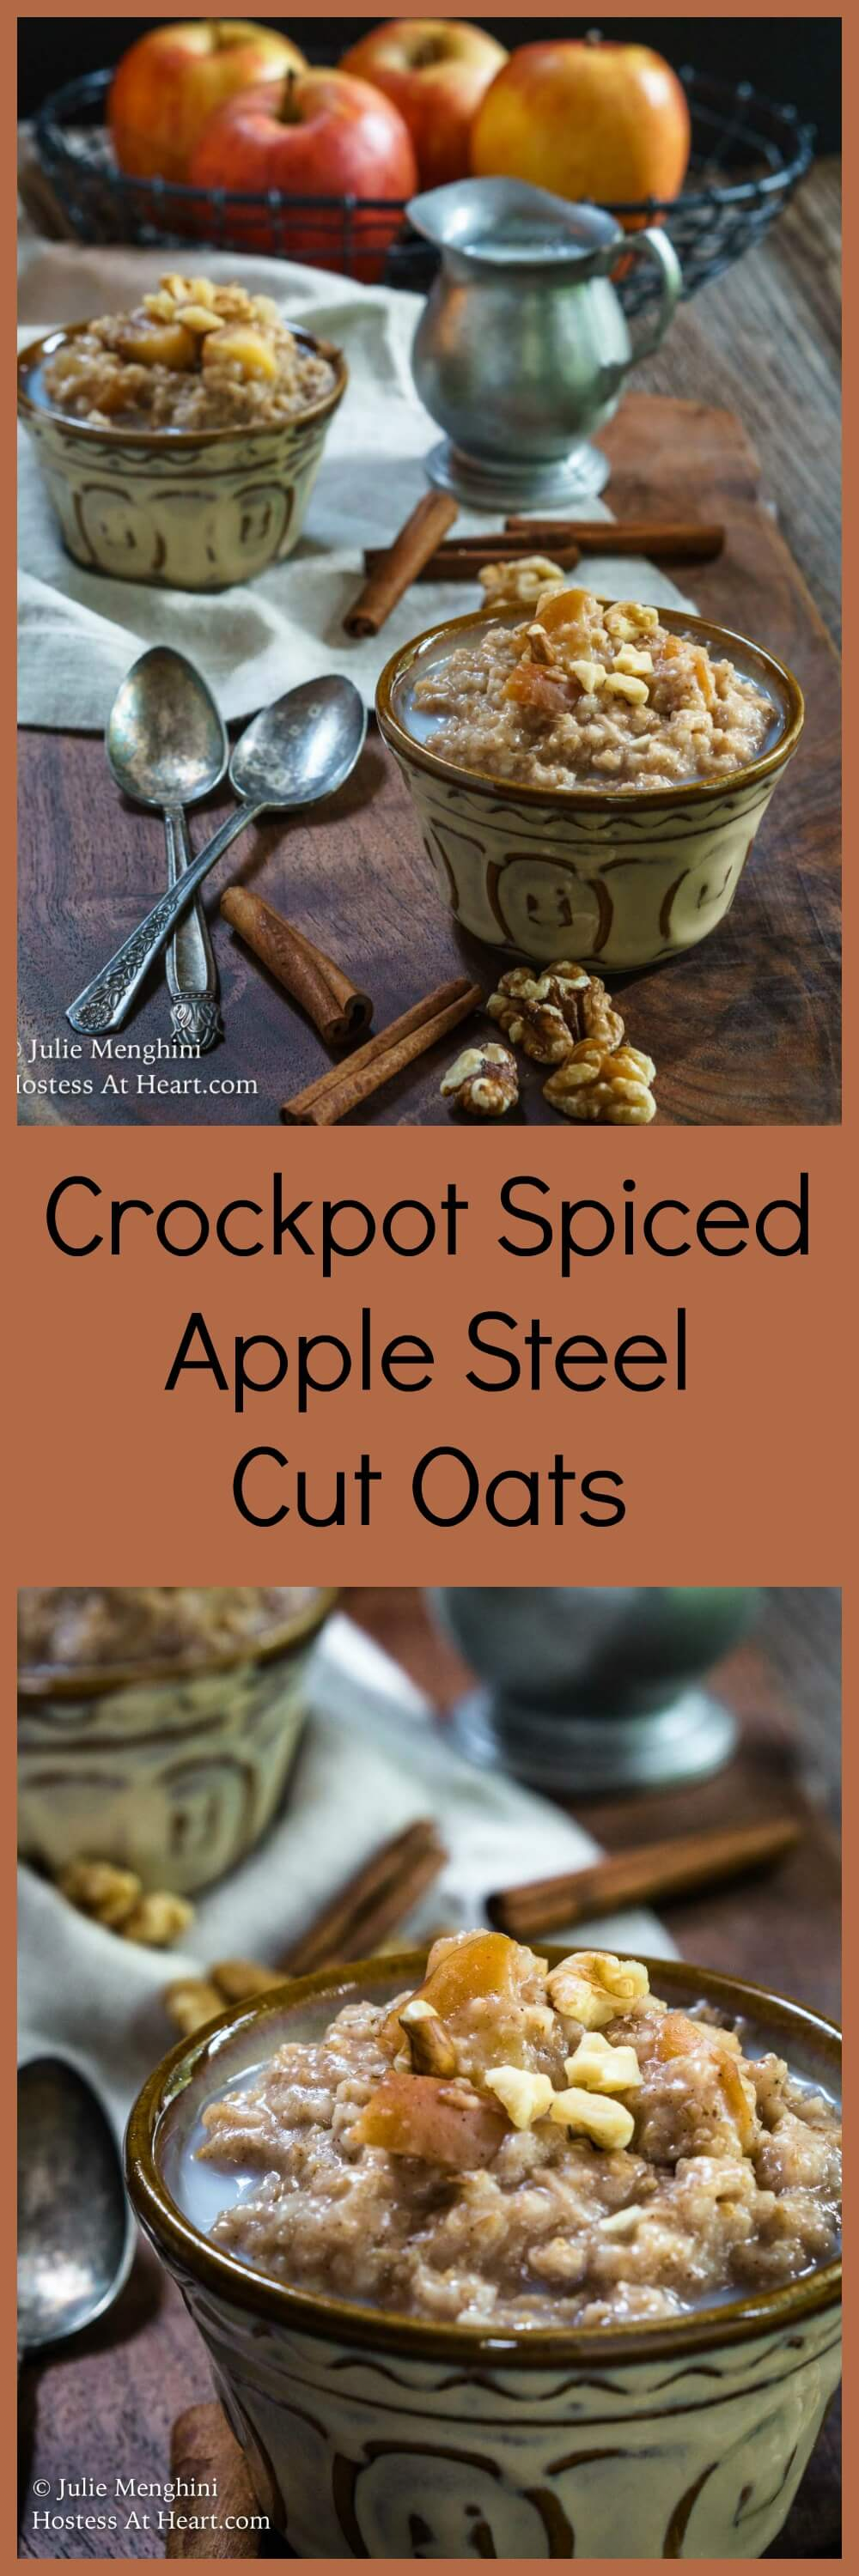 Crockpot Spiced Apple Steel Cut Oats is delicious, healthy, and will keep you satisfied until lunch and it's like having apple pie for breakfast! | HostessAtHeart.com